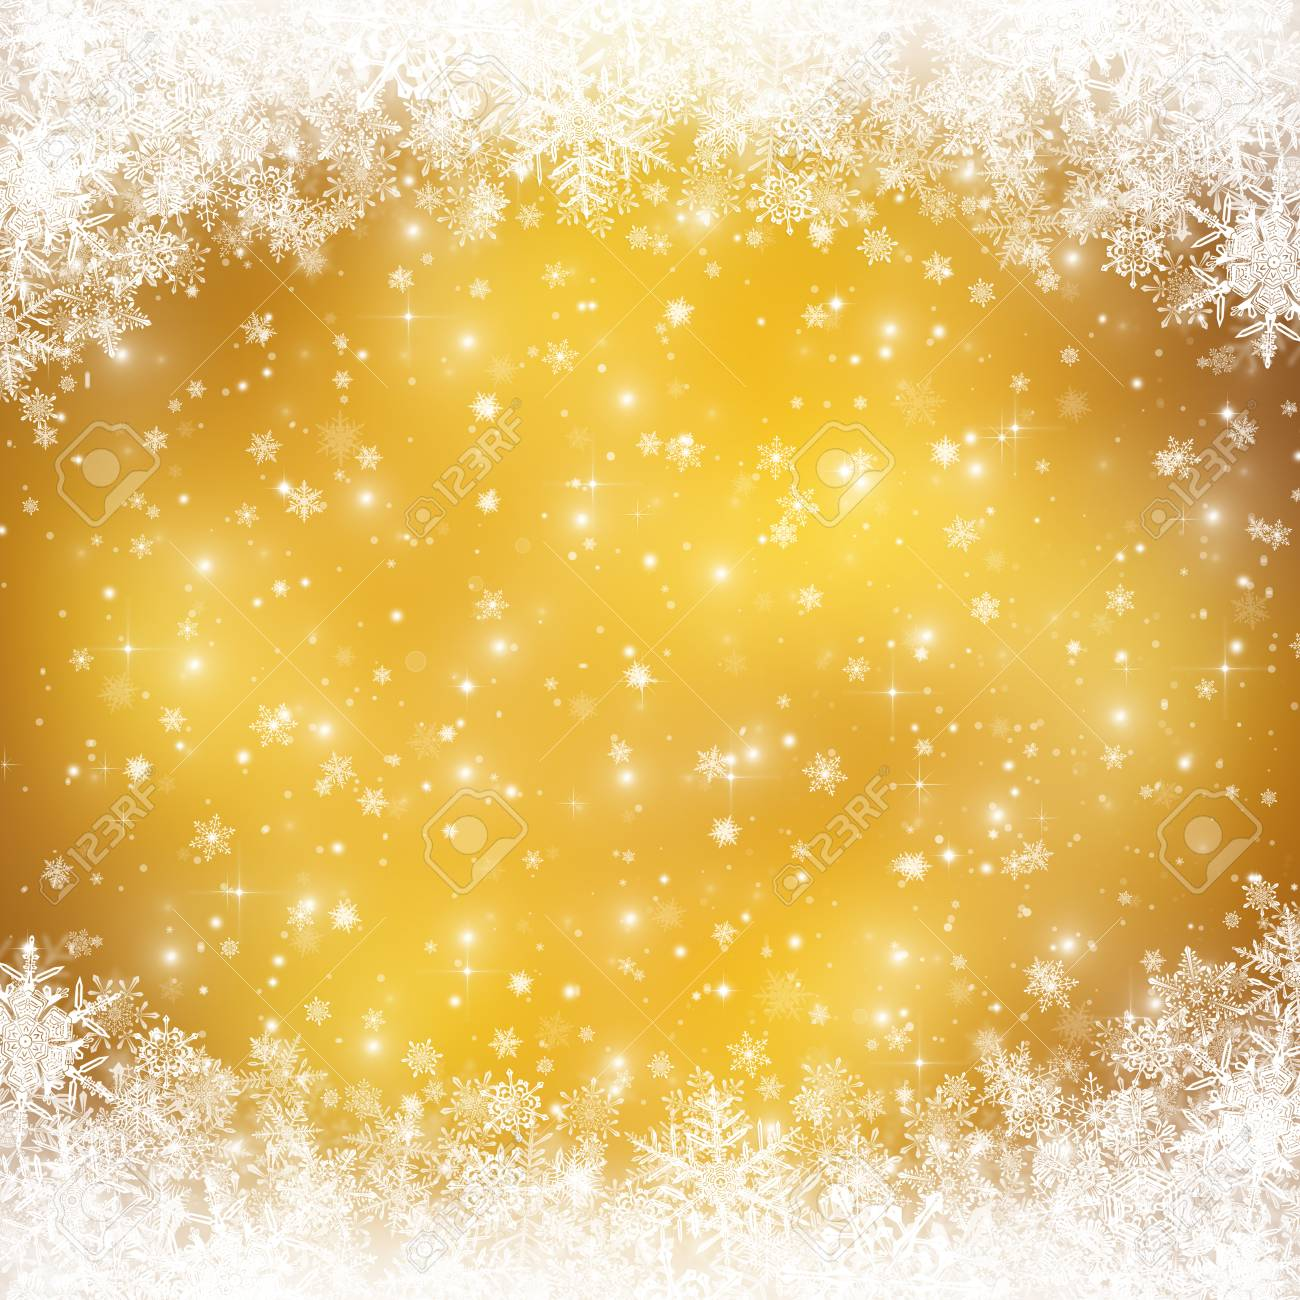 Decorative christmas background with bokeh lights and snowflakes - 48326534